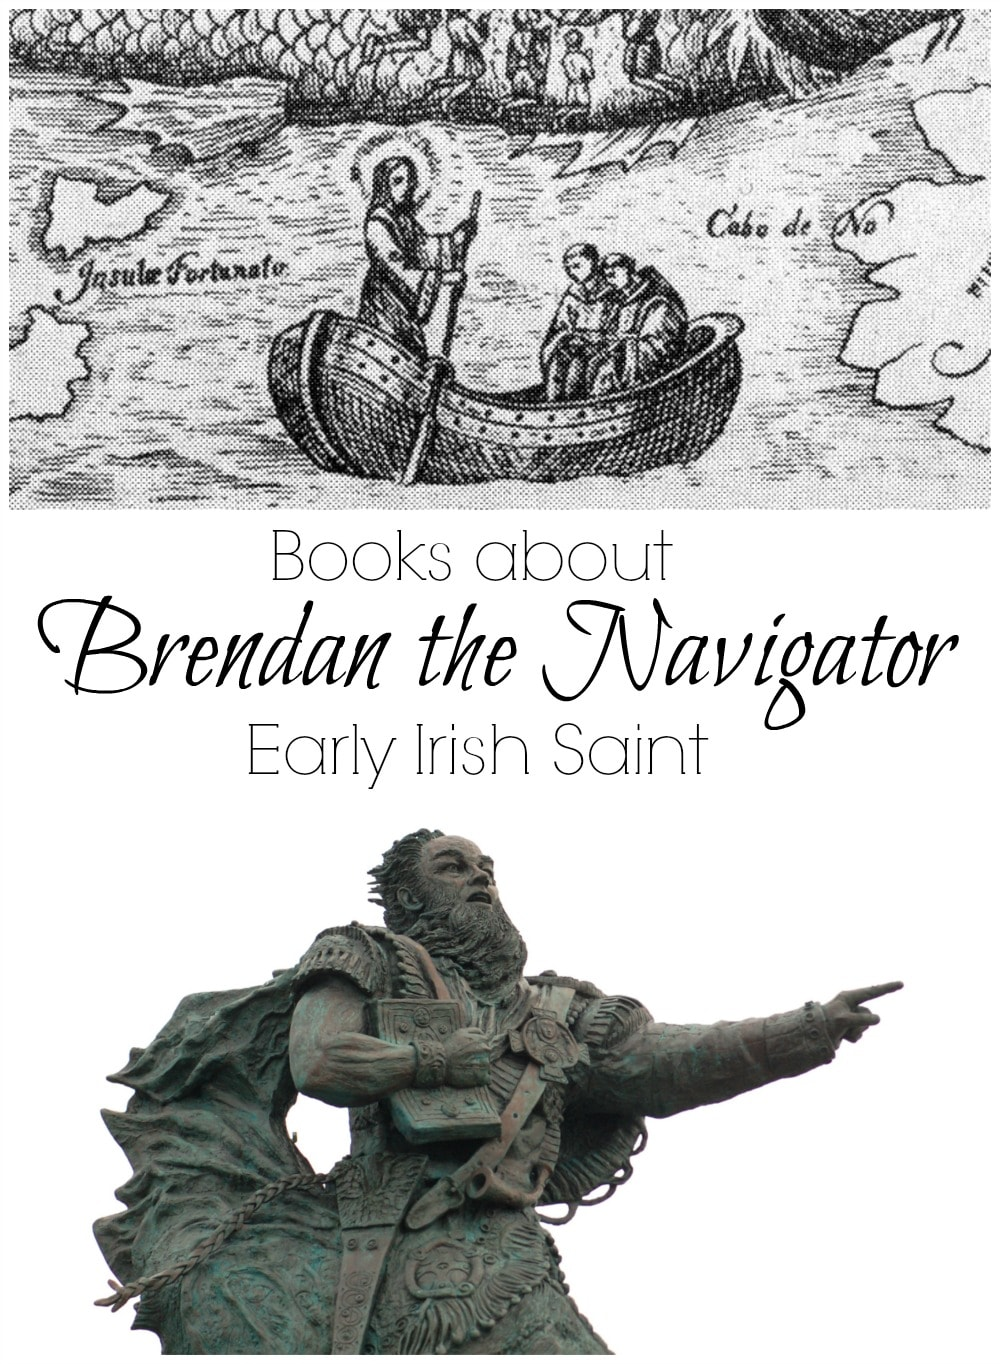 Books about Brendan the Navigator - another famous Irish Saint who doesn't get as much attention as St. Patrick.